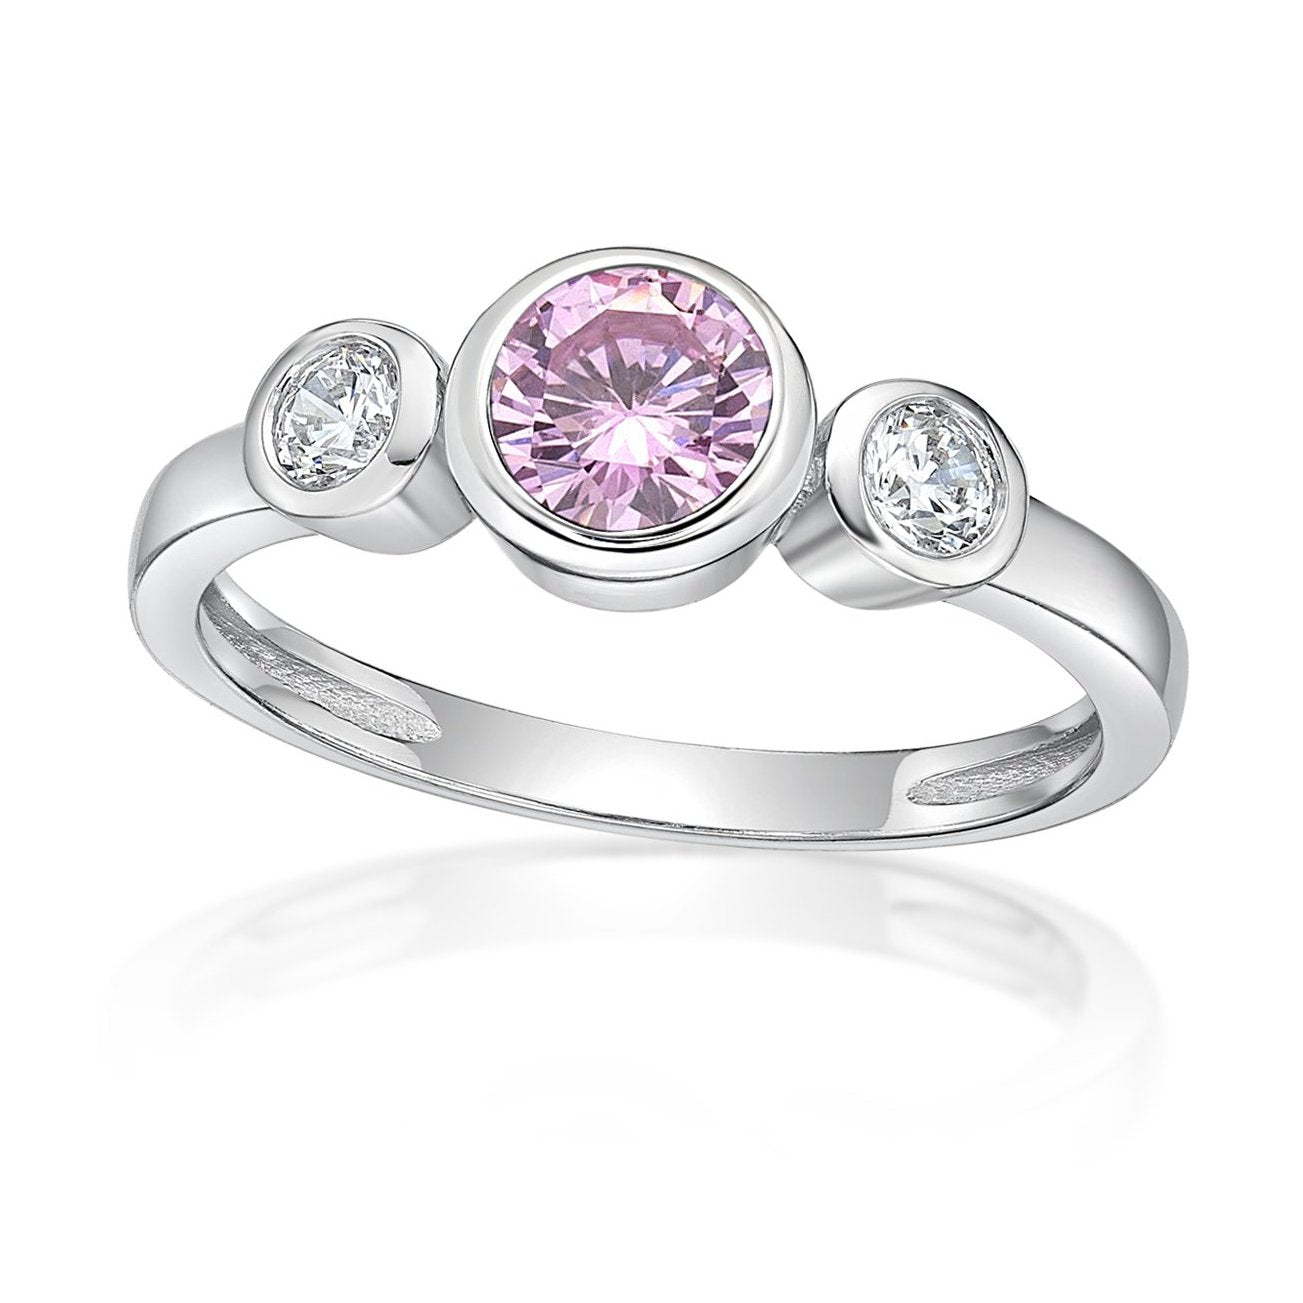 Sterling Silver Pink Cubic Zirconia Ring. October birthstone